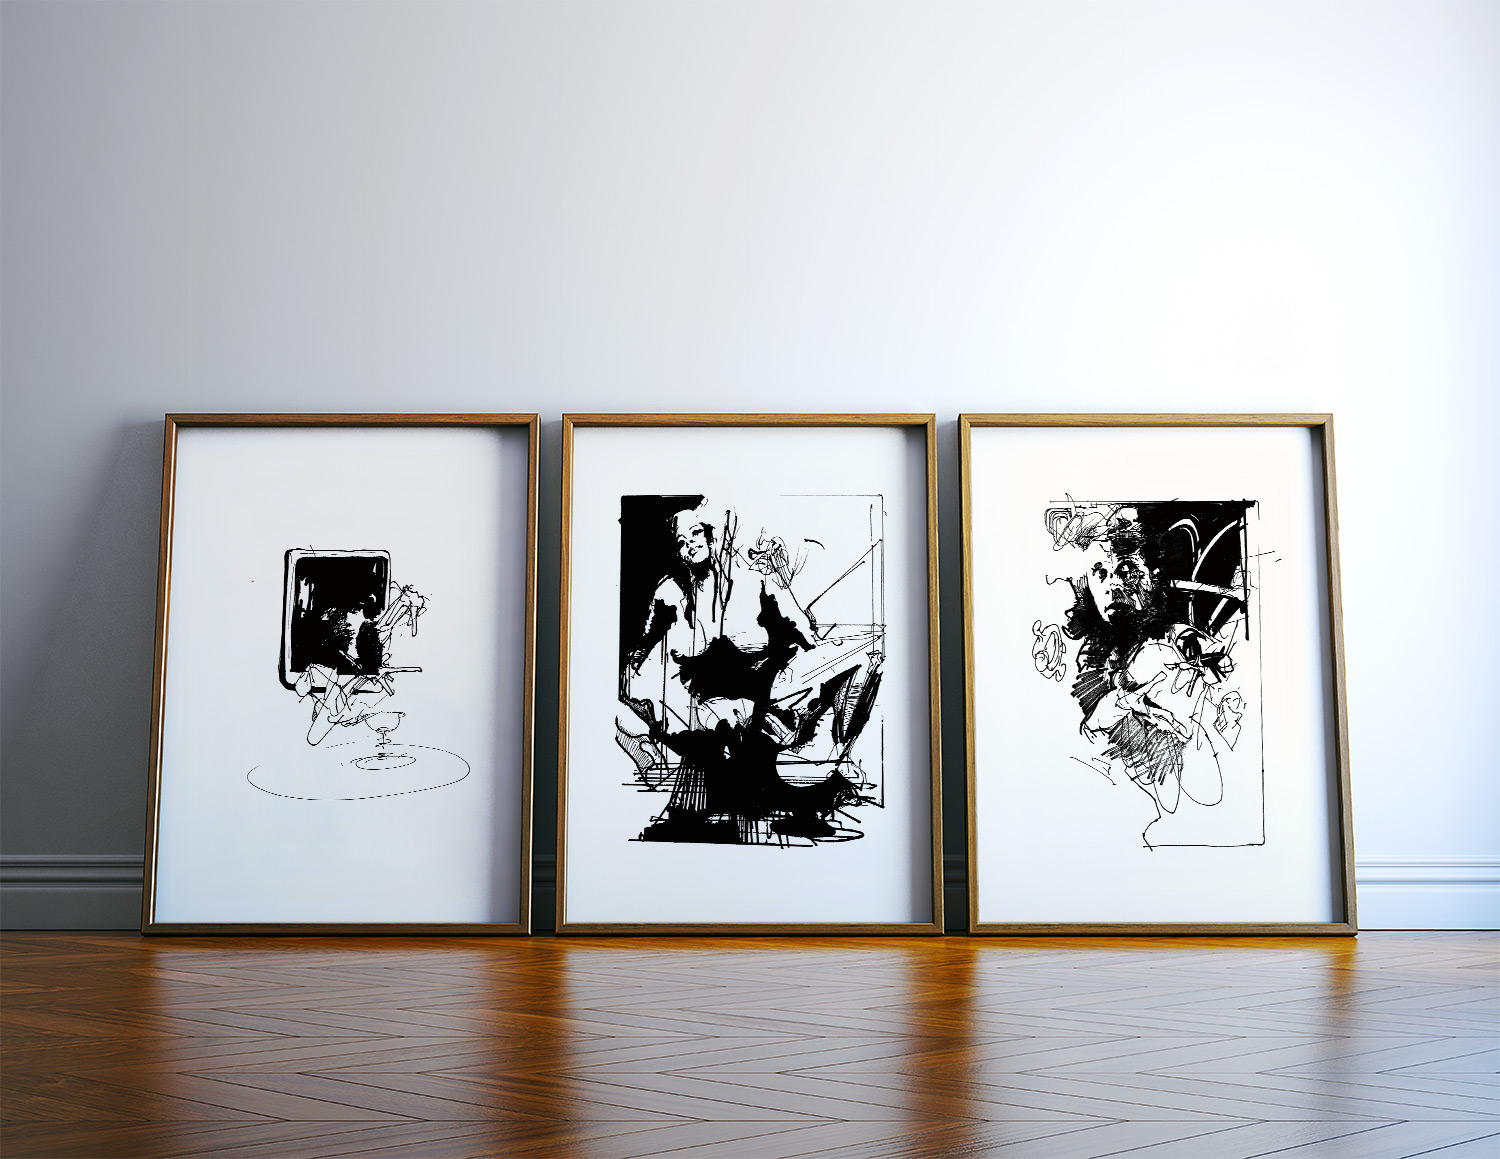 posters-prints, giclee-print, abstract, expressive, monochrome, patterns, people, black, white, ink, paper, black-and-white, contemporary-art, danish, decorative, design, expressionism, faces, interior, interior-design, modern, modern-art, nordic, posters, prints, scandinavien, Buy original high quality art. Paintings, drawings, limited edition prints & posters by talented artists.